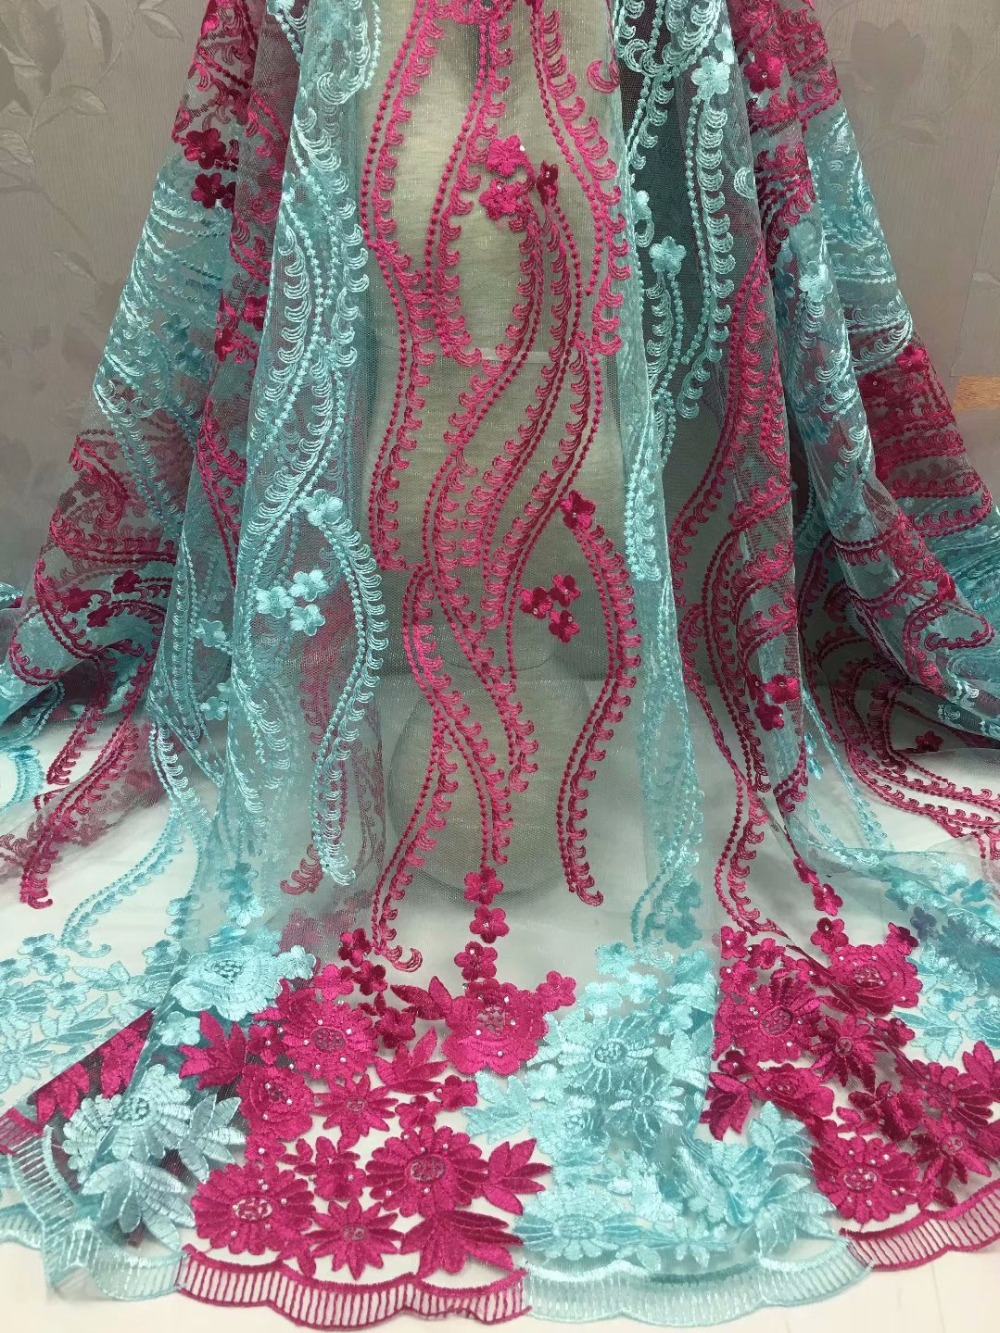 Classic design  african net tulle lace fabric  fashion french lace fabric embroidery lace fabric for women dress   ydm163Classic design  african net tulle lace fabric  fashion french lace fabric embroidery lace fabric for women dress   ydm163